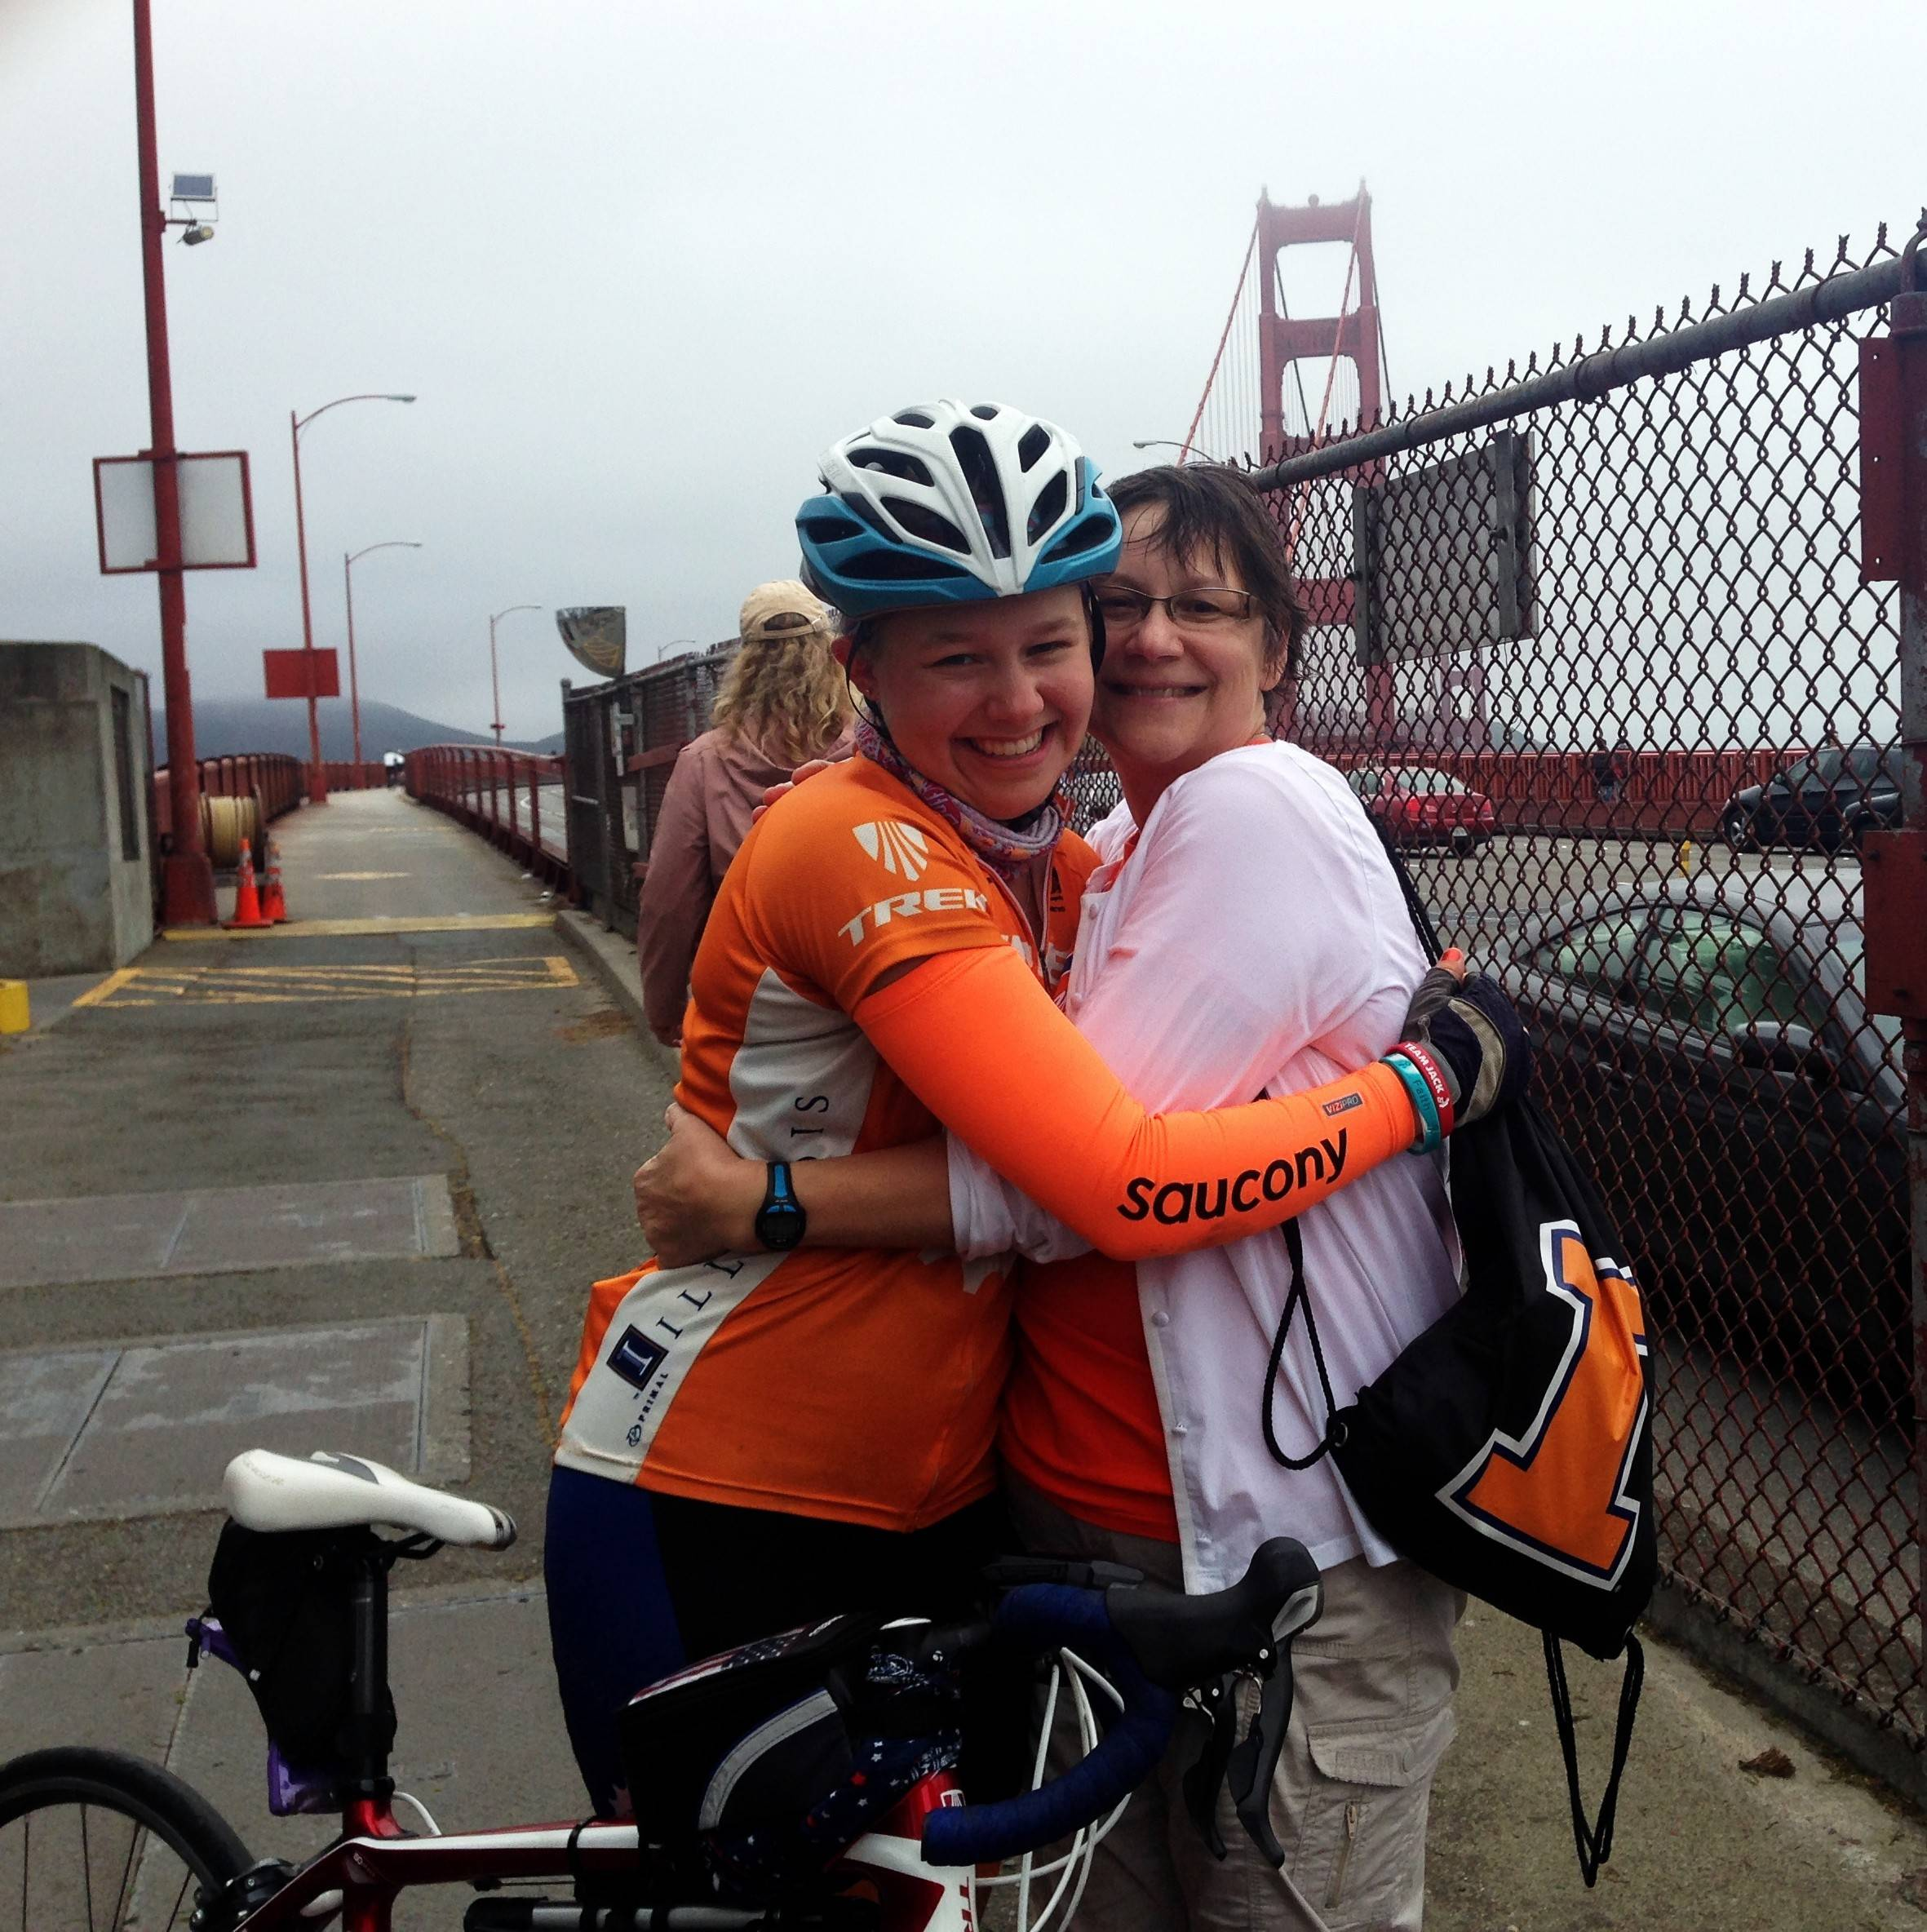 Grace Deetjen of Naperville embraces her mom, Kim, after Grace and a team from the University of Illinois bicycled roughly 4,000 miles across the U.S. to raise money for cancer research.